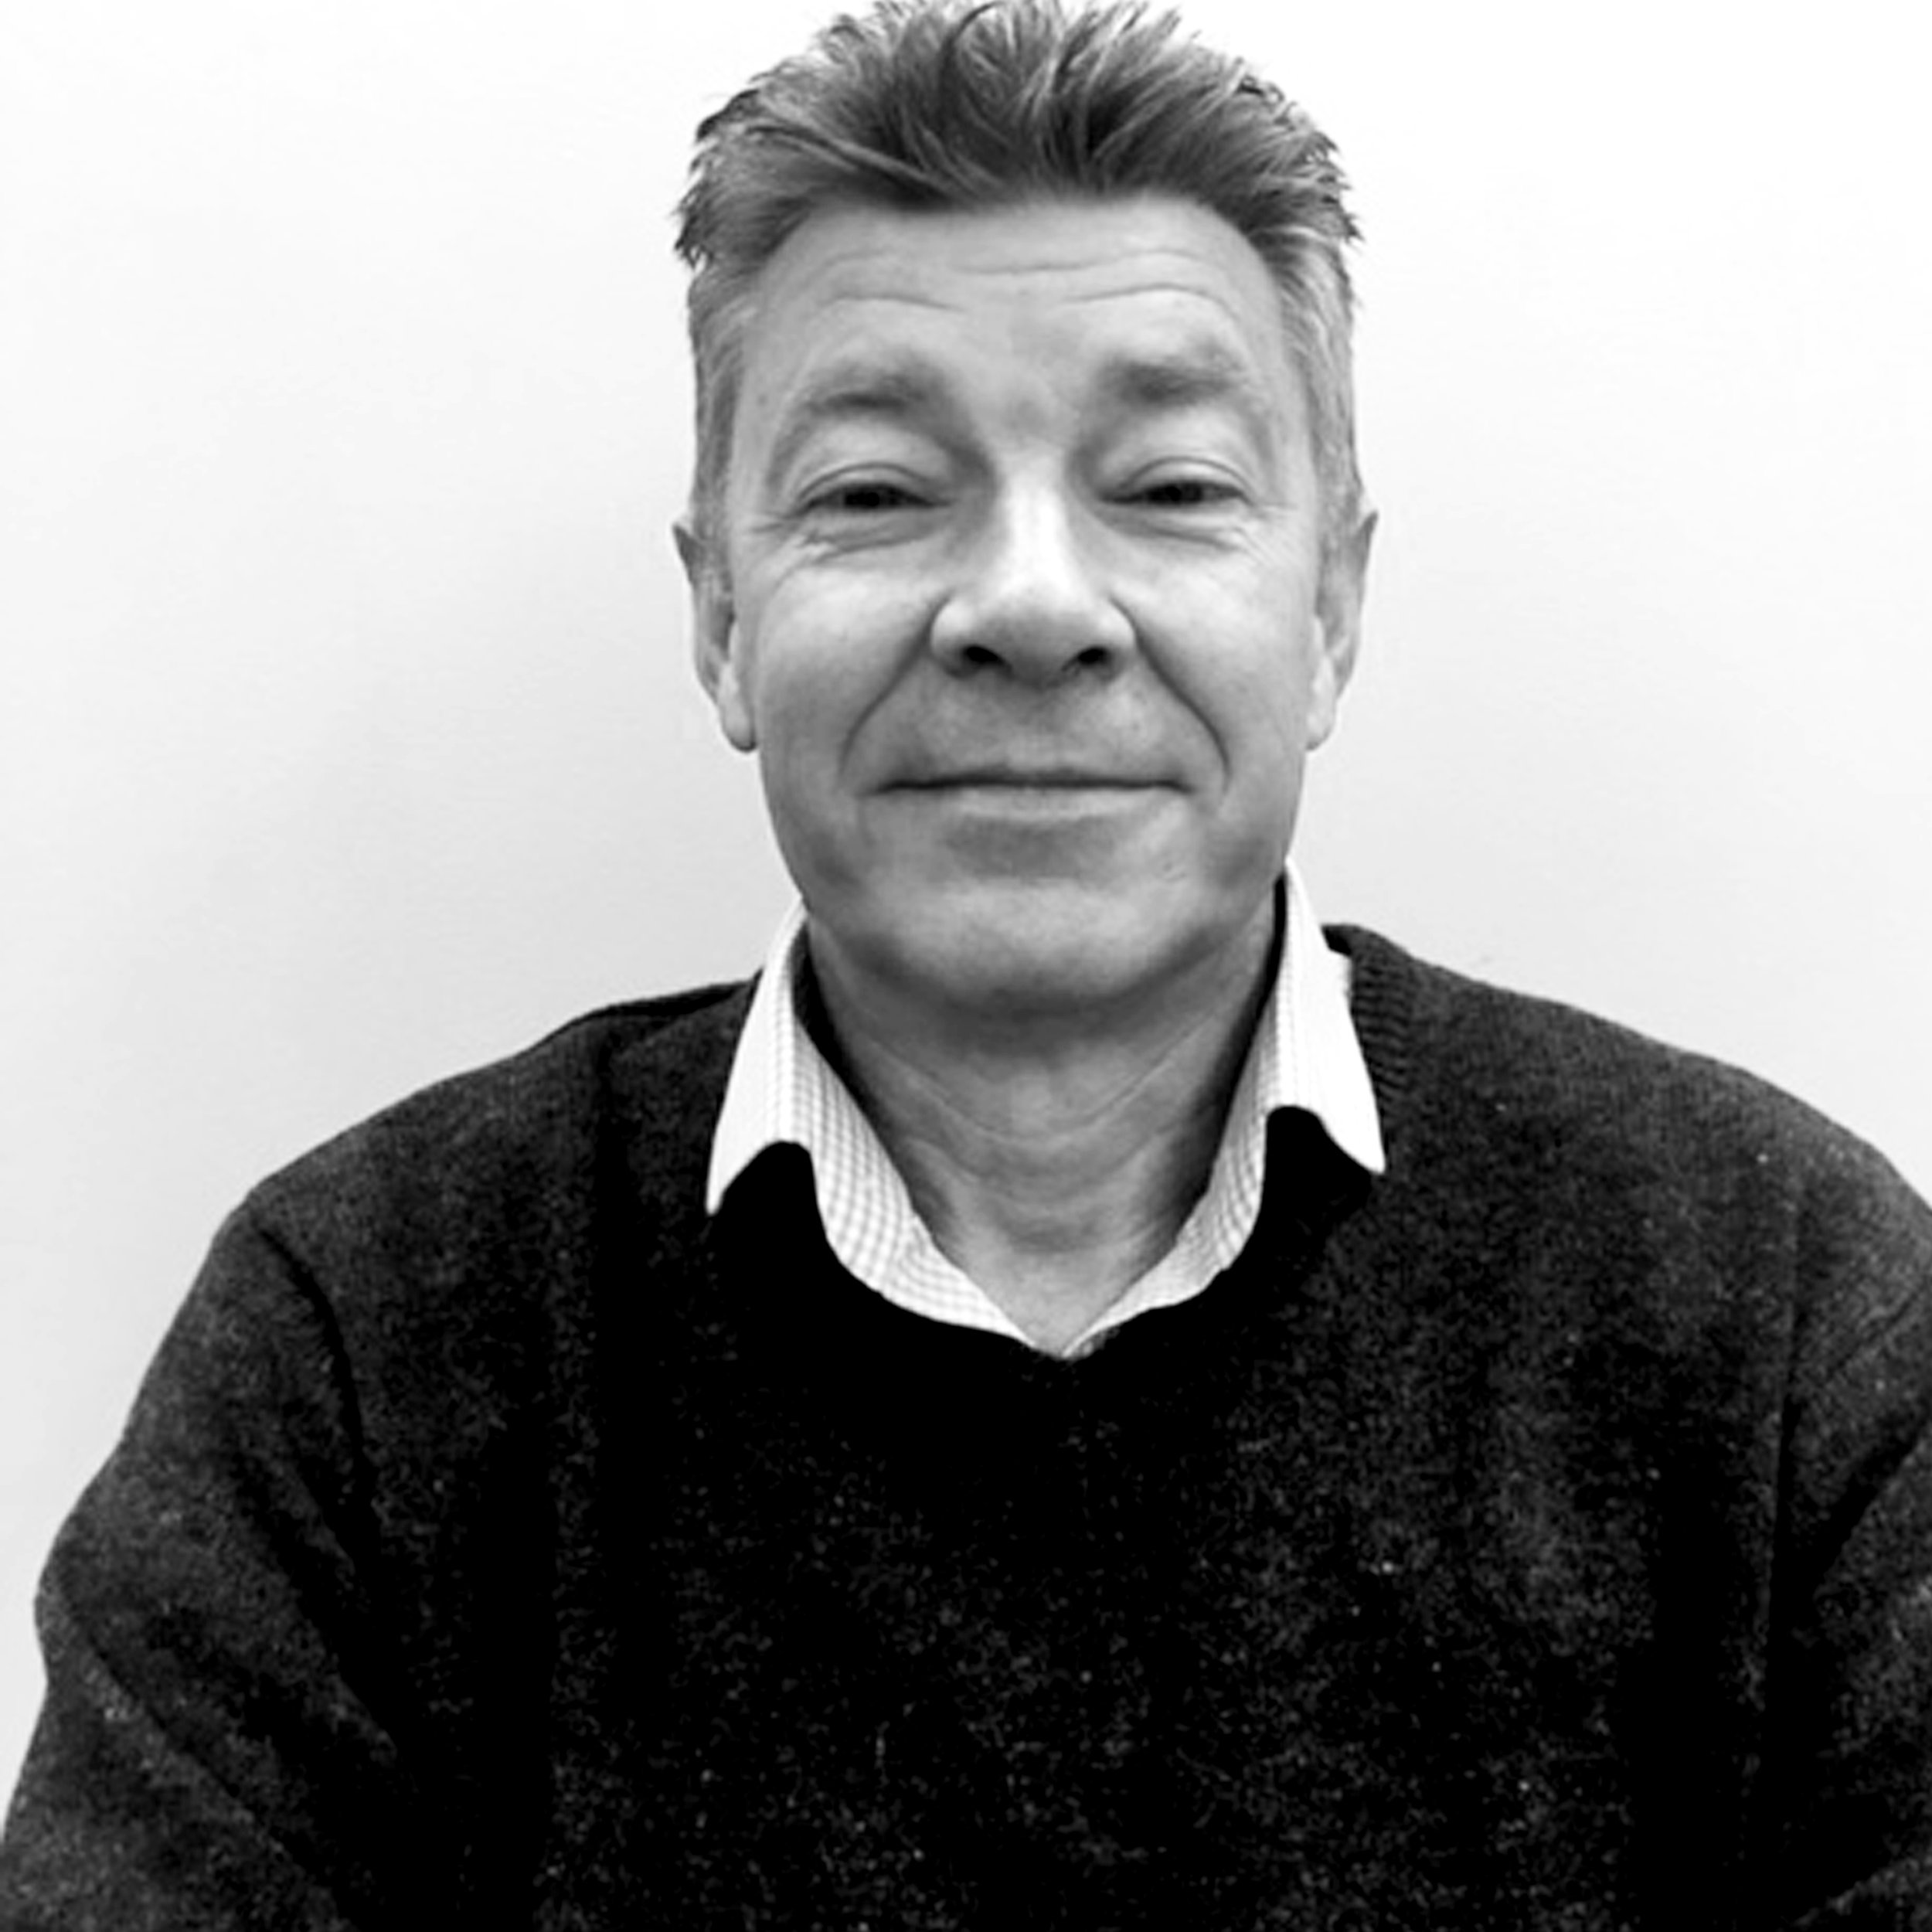 PETER RITCHIE